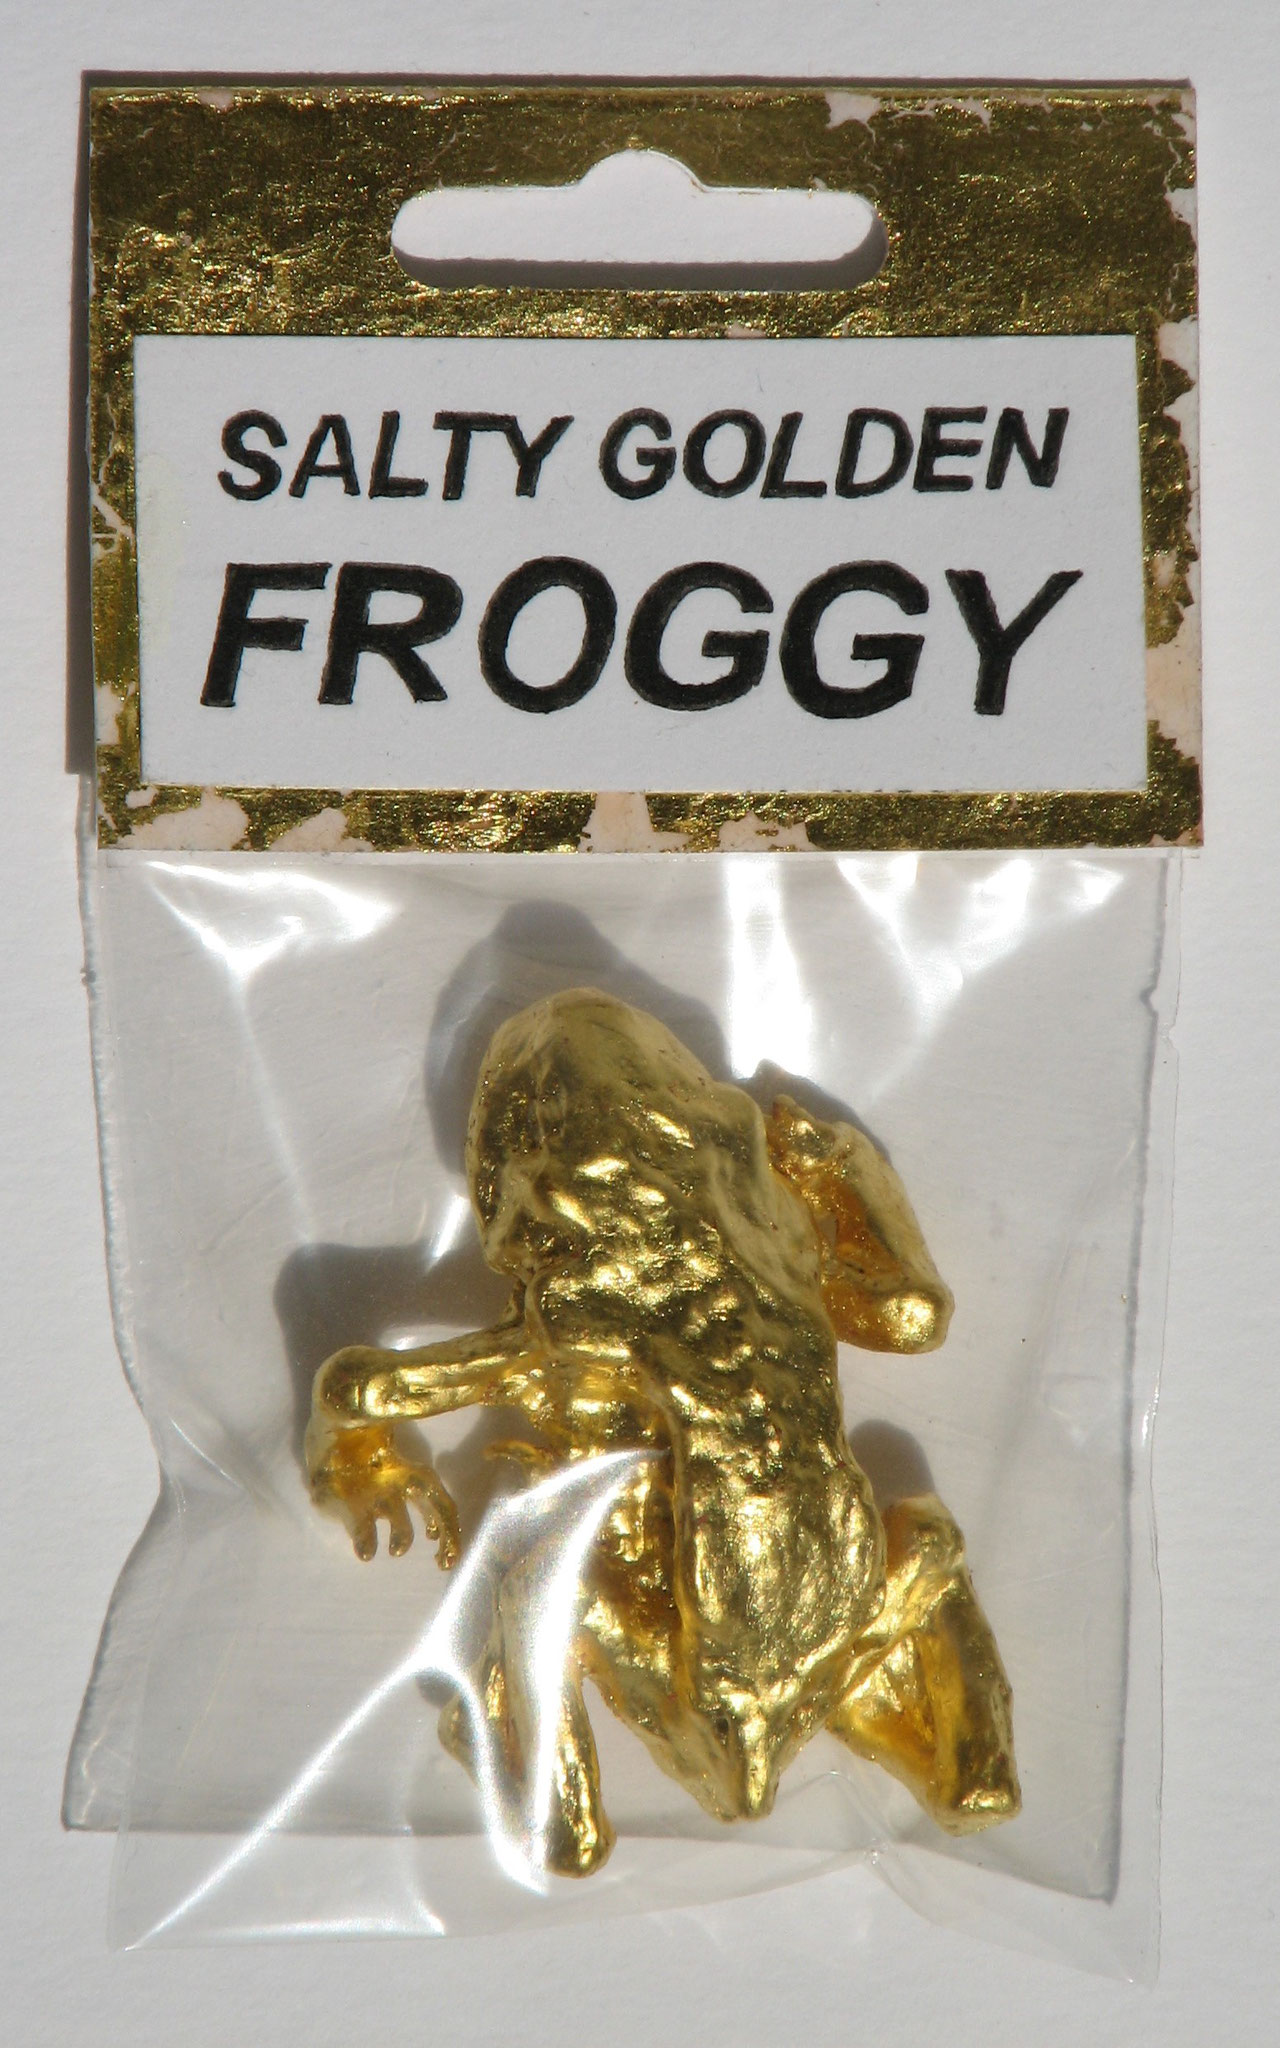 Salty Golden Froggy  2016  Gilt Frog in Packaging  4 x 5,5 cm